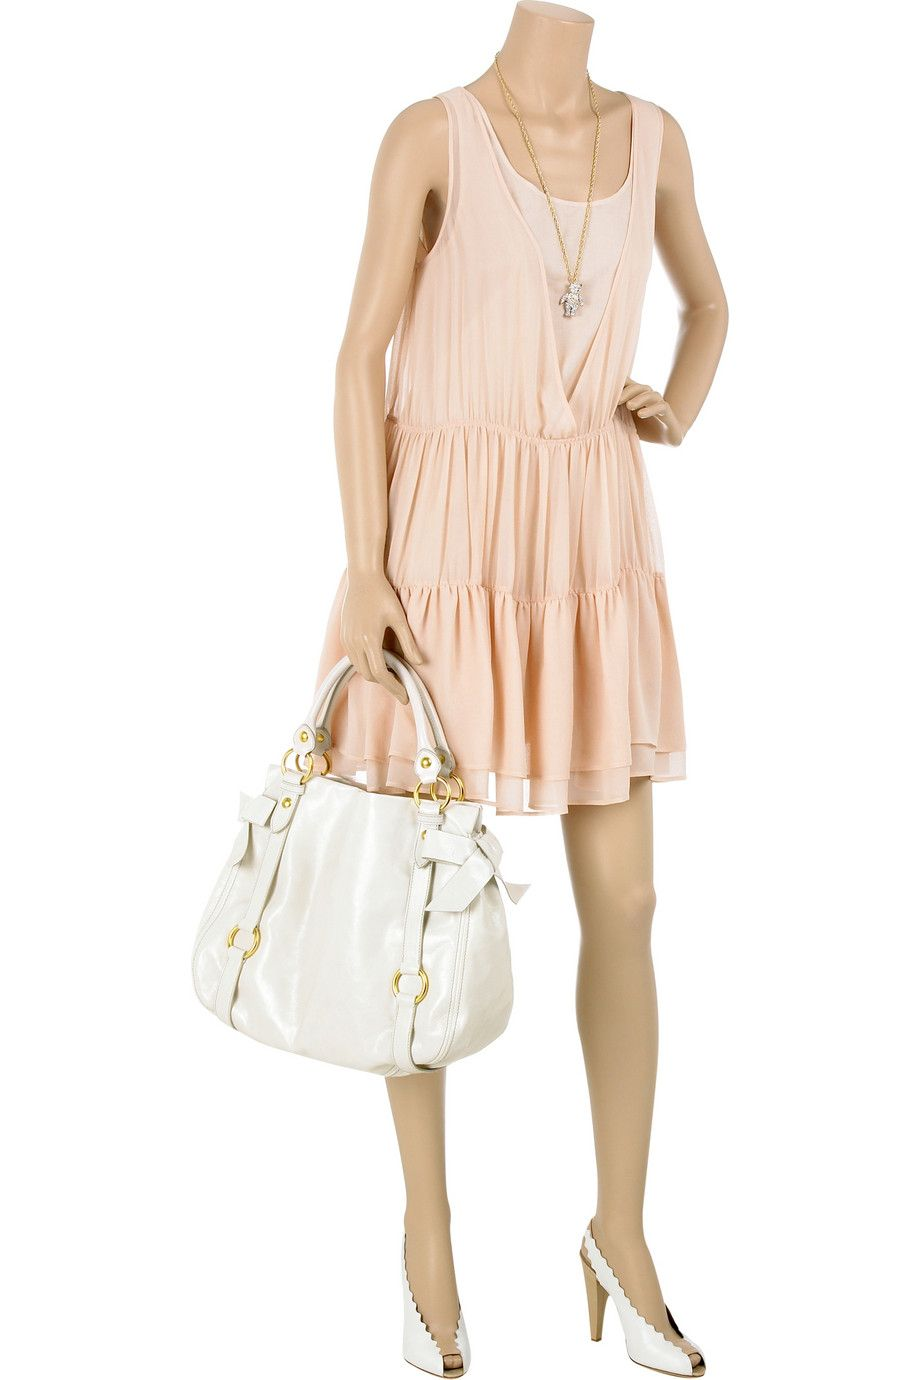 7b6ddc613b Blush silk sleeveless dress with tiered pleated skirt. See by Chloé dress  has a deep V-neck with a layered top underneath